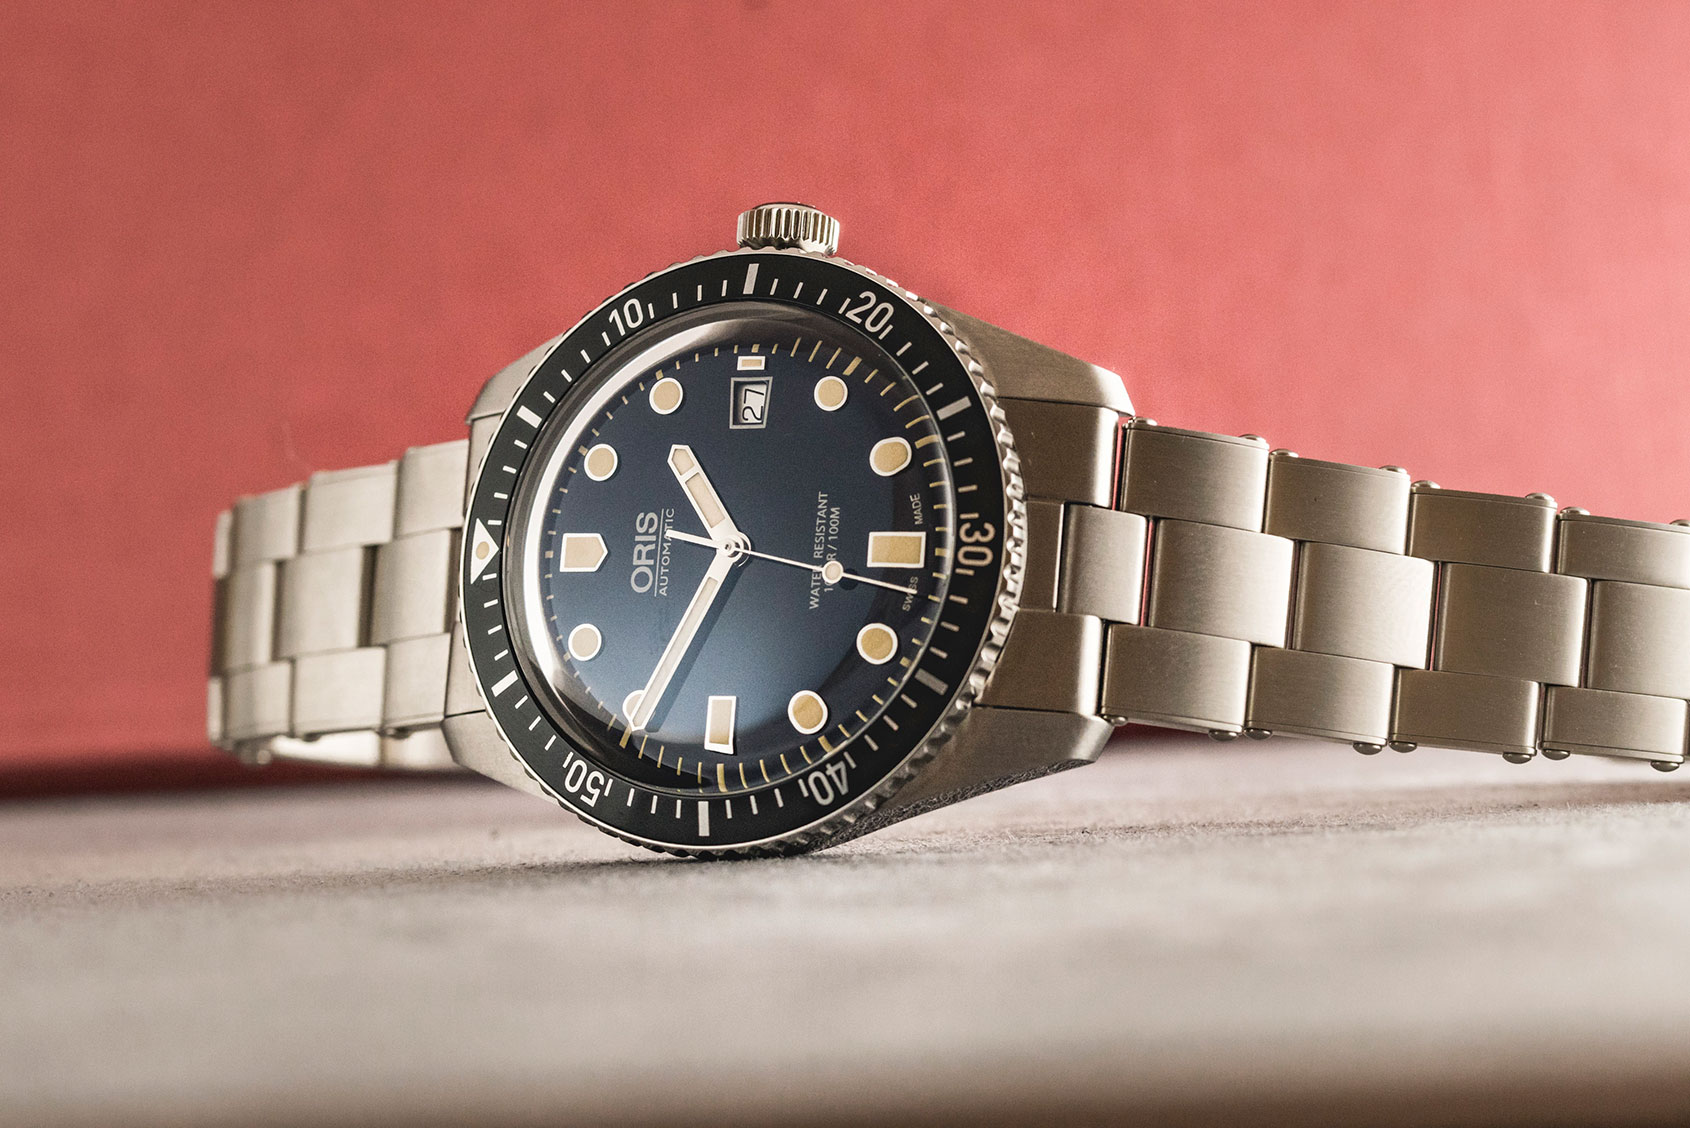 Let's Look At The Affordable, Sporty And Swiss Made Oris Divers Sixty-Five 42 mm Replica Watch